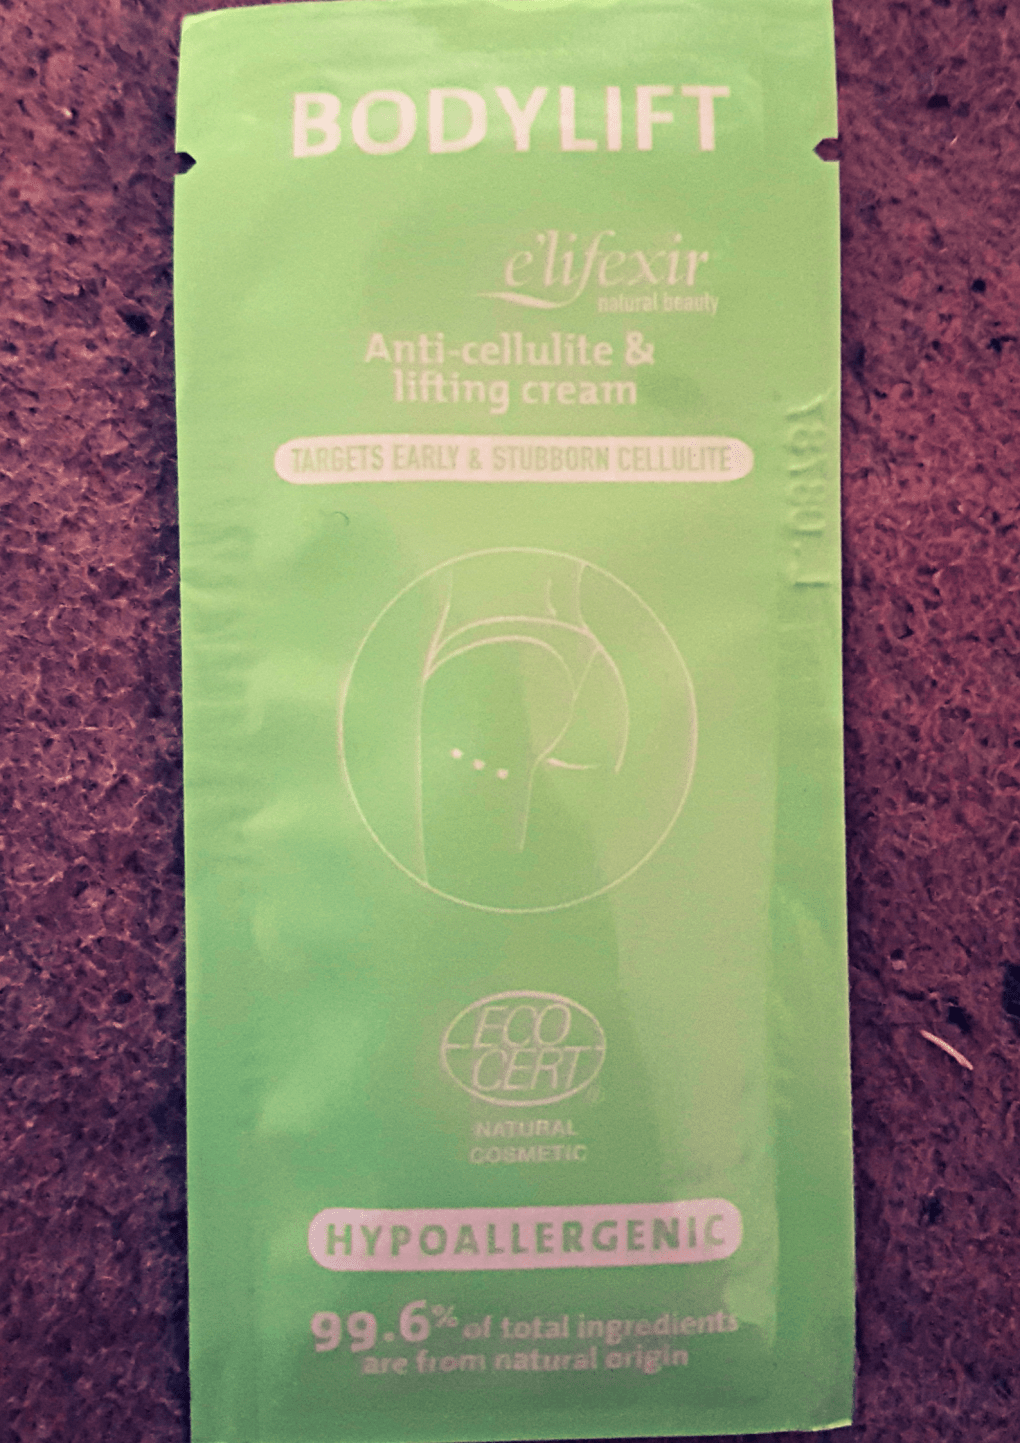 Green sachet with Bodylift written on it with a diagram of a pushed up bottom